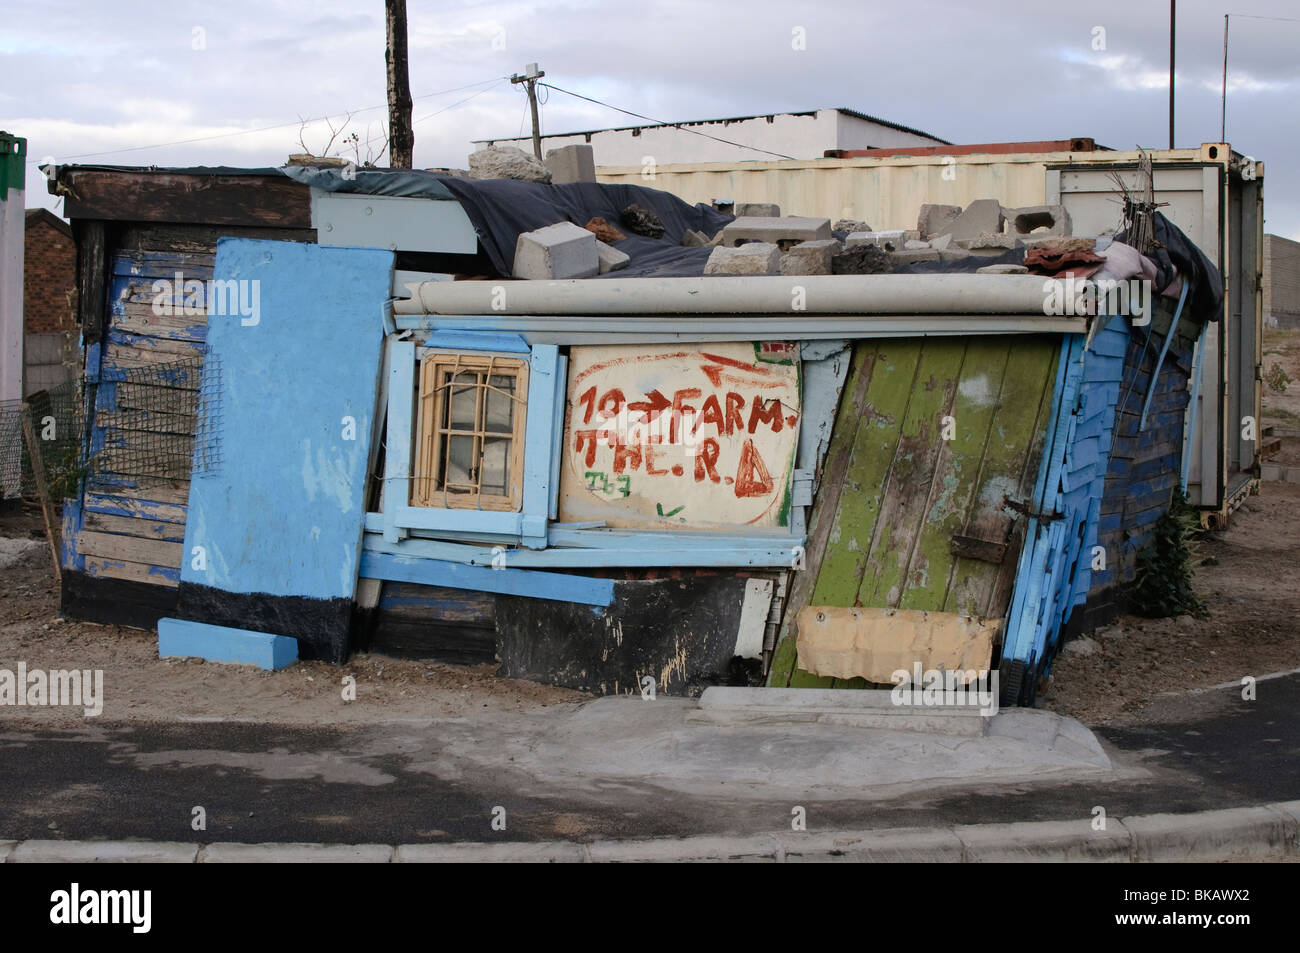 Well painted, but skew shack - Stock Image